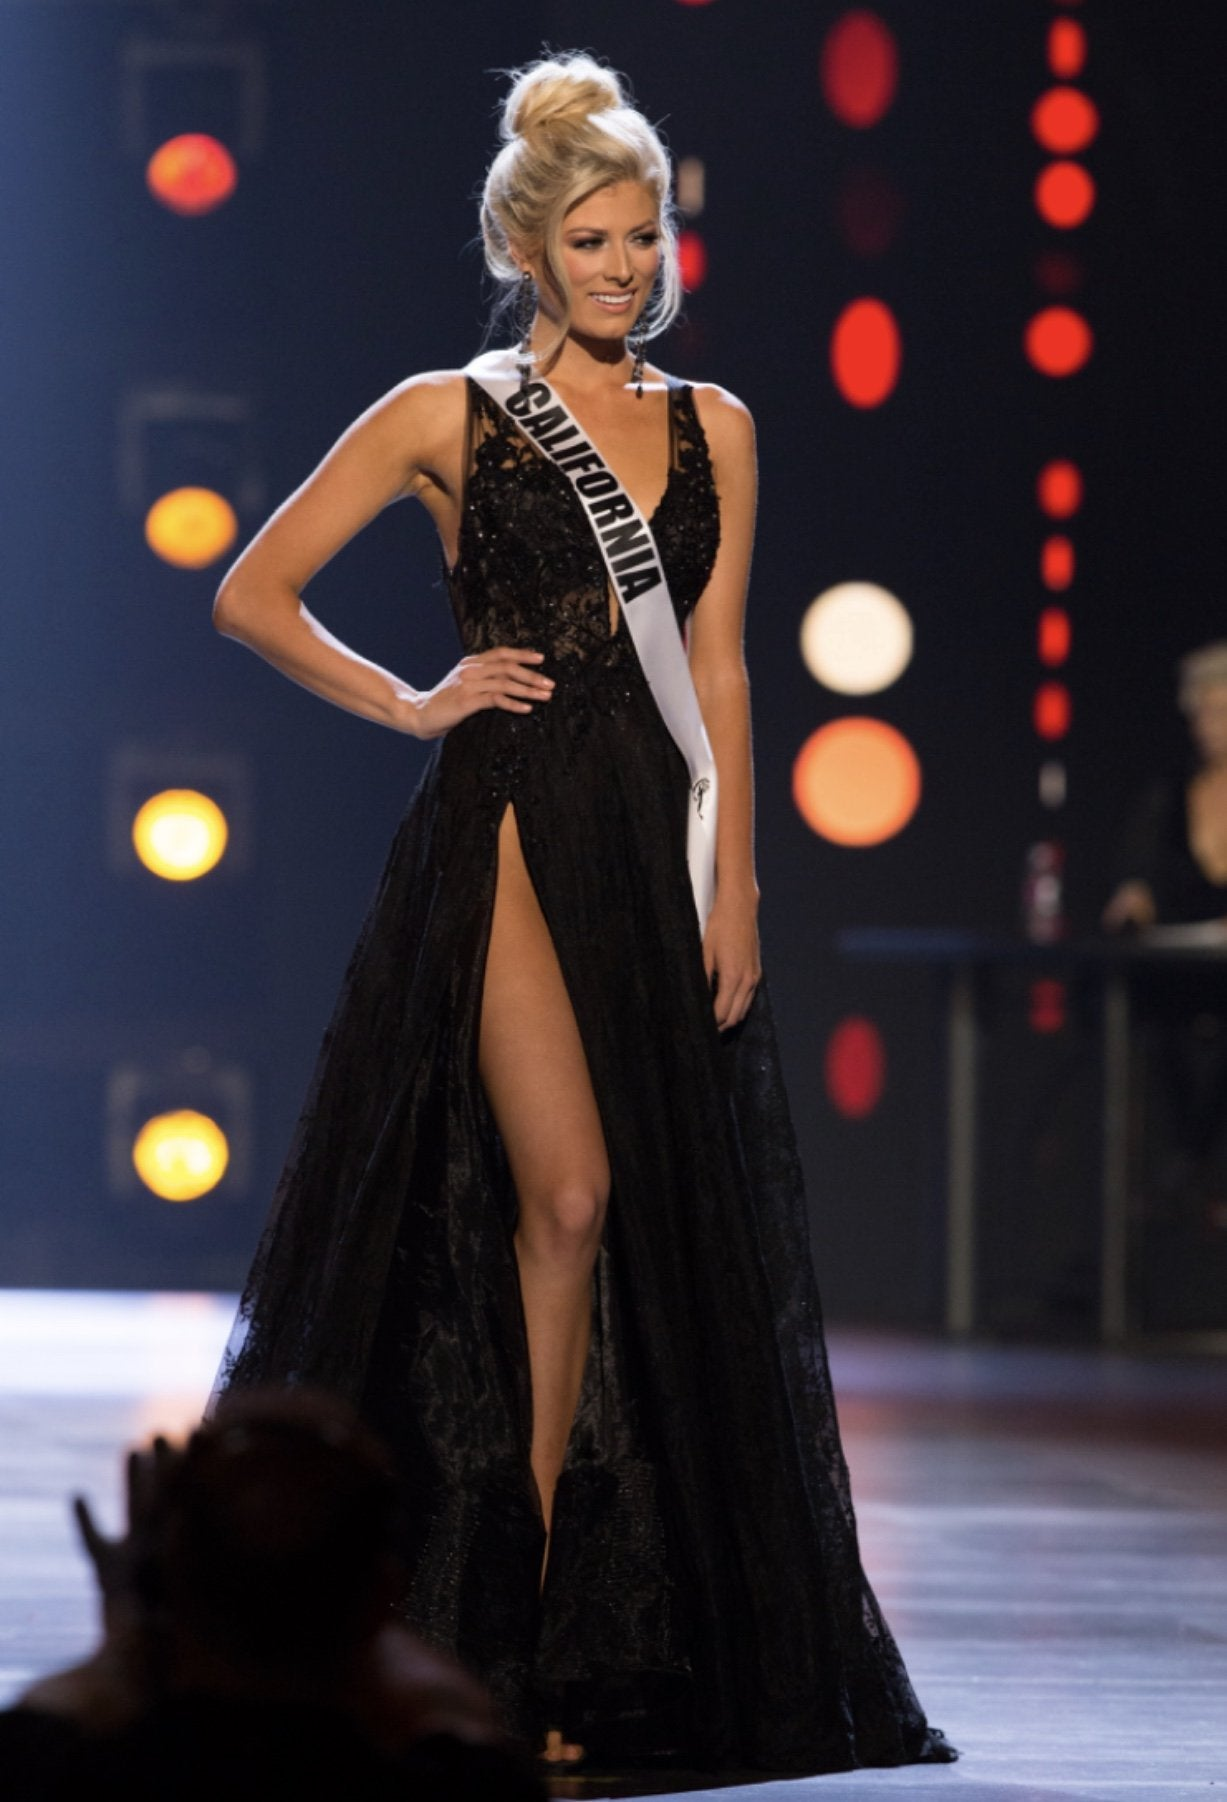 miss california usa 2018 black gown